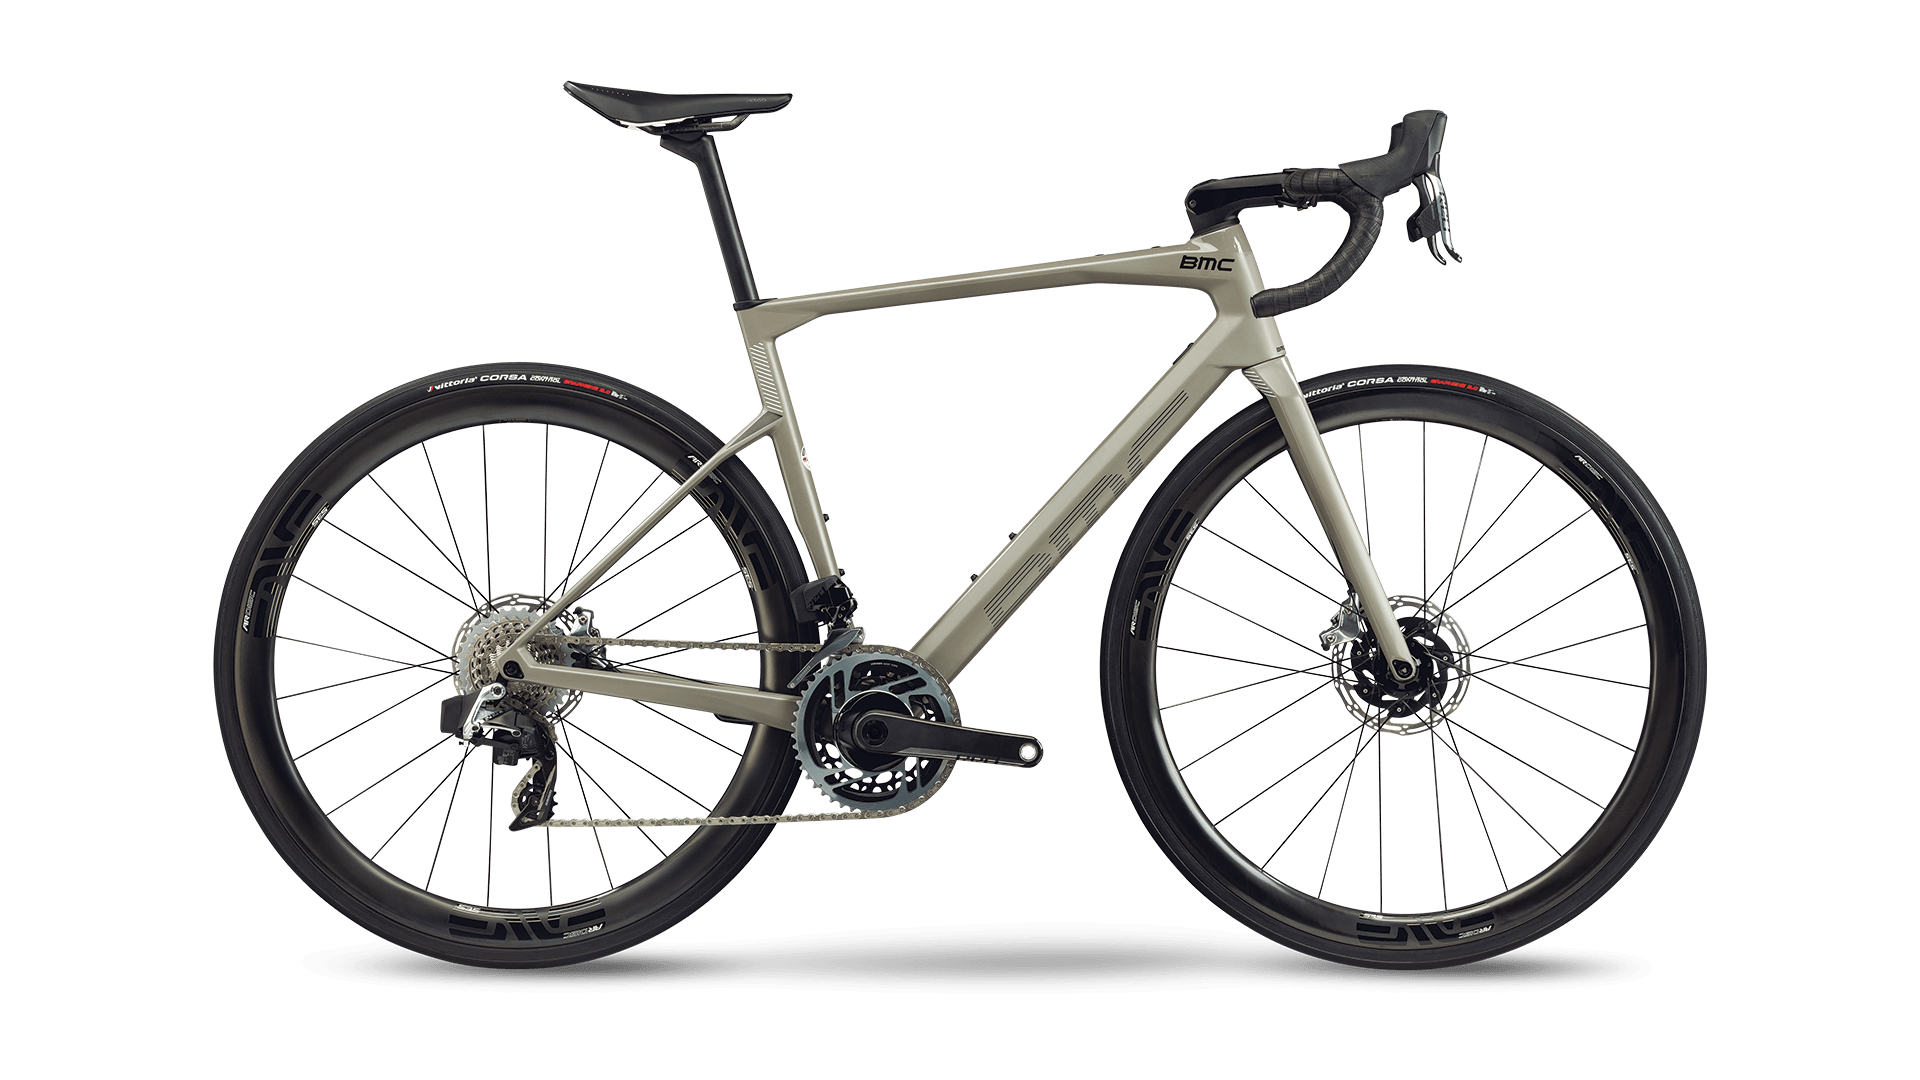 Bicicleta de Ruta Roadmachine 01 One - BMC - BMC Colombia